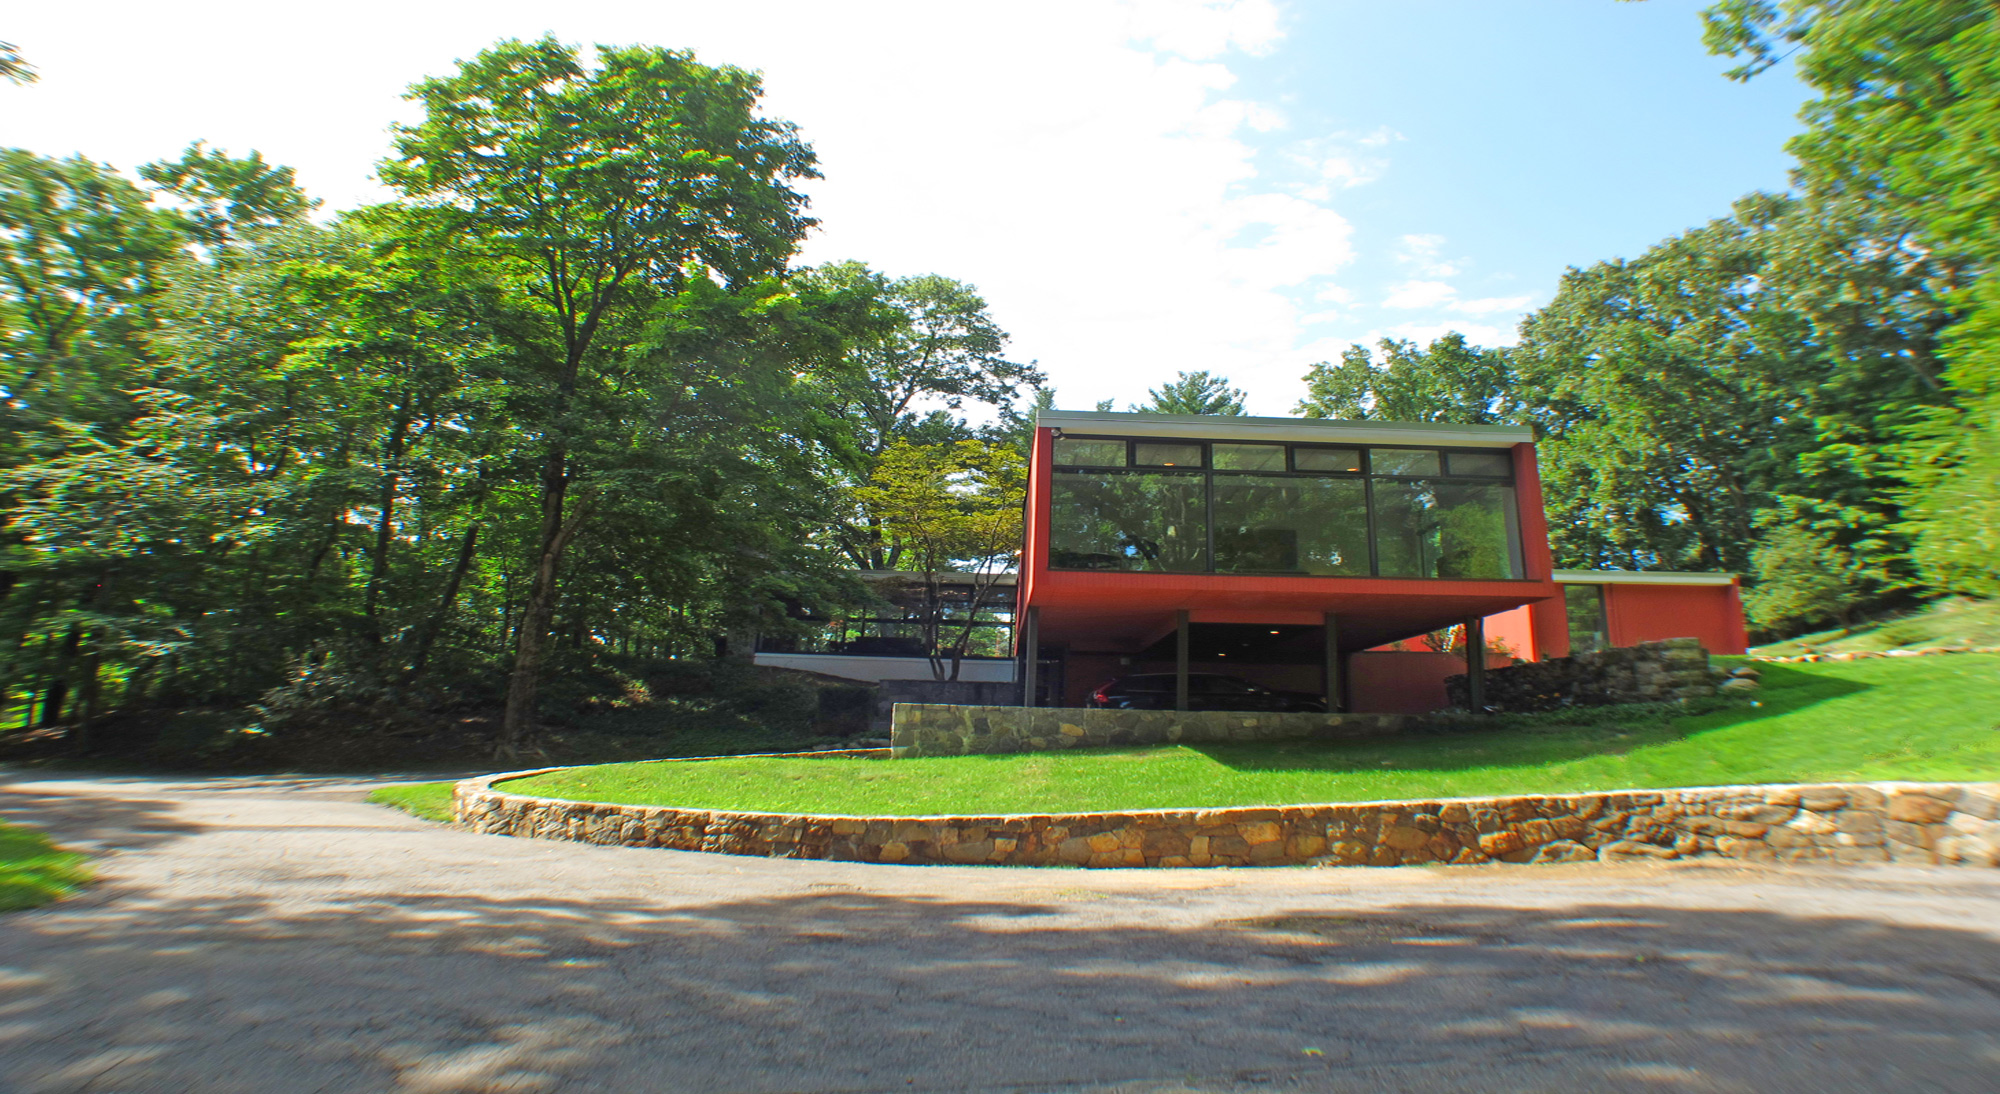 $1,350,000 THE MEYER RESIDENCE 1955, ARCHITECT LEONARD FELDMAN, CHAPPAQUA,  NY. This Remarkable Modernist Icon Is A Triumphant Statement In The  International ...